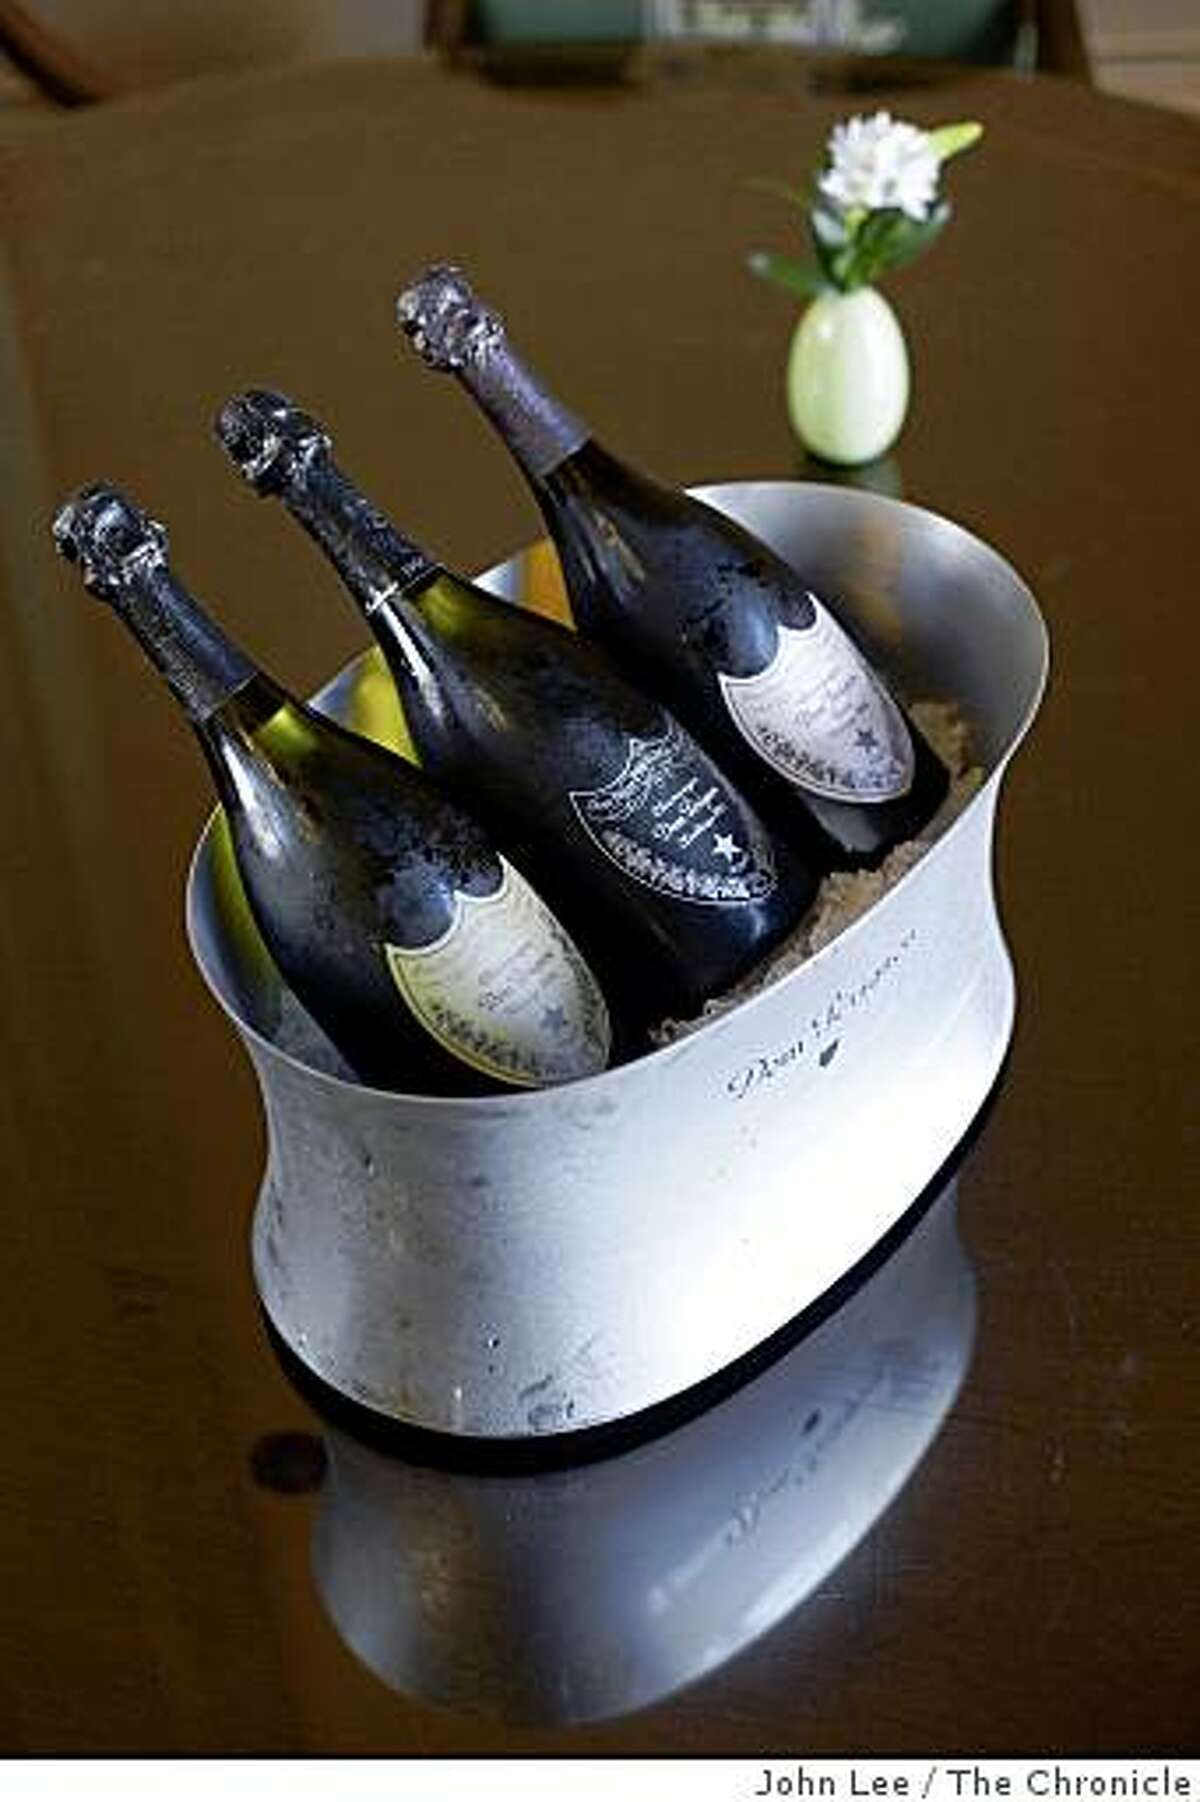 SFISJULY_Spirited_12_JOHNLEEPICTURES.JPG Bottles of Dom Pérignon champagne chilled in an ice bucket inside the Lobby Lounge at the Ritz-Carlton in San Francisco.By JOHN LEE/SPECIAL TO THE CHRONICLE